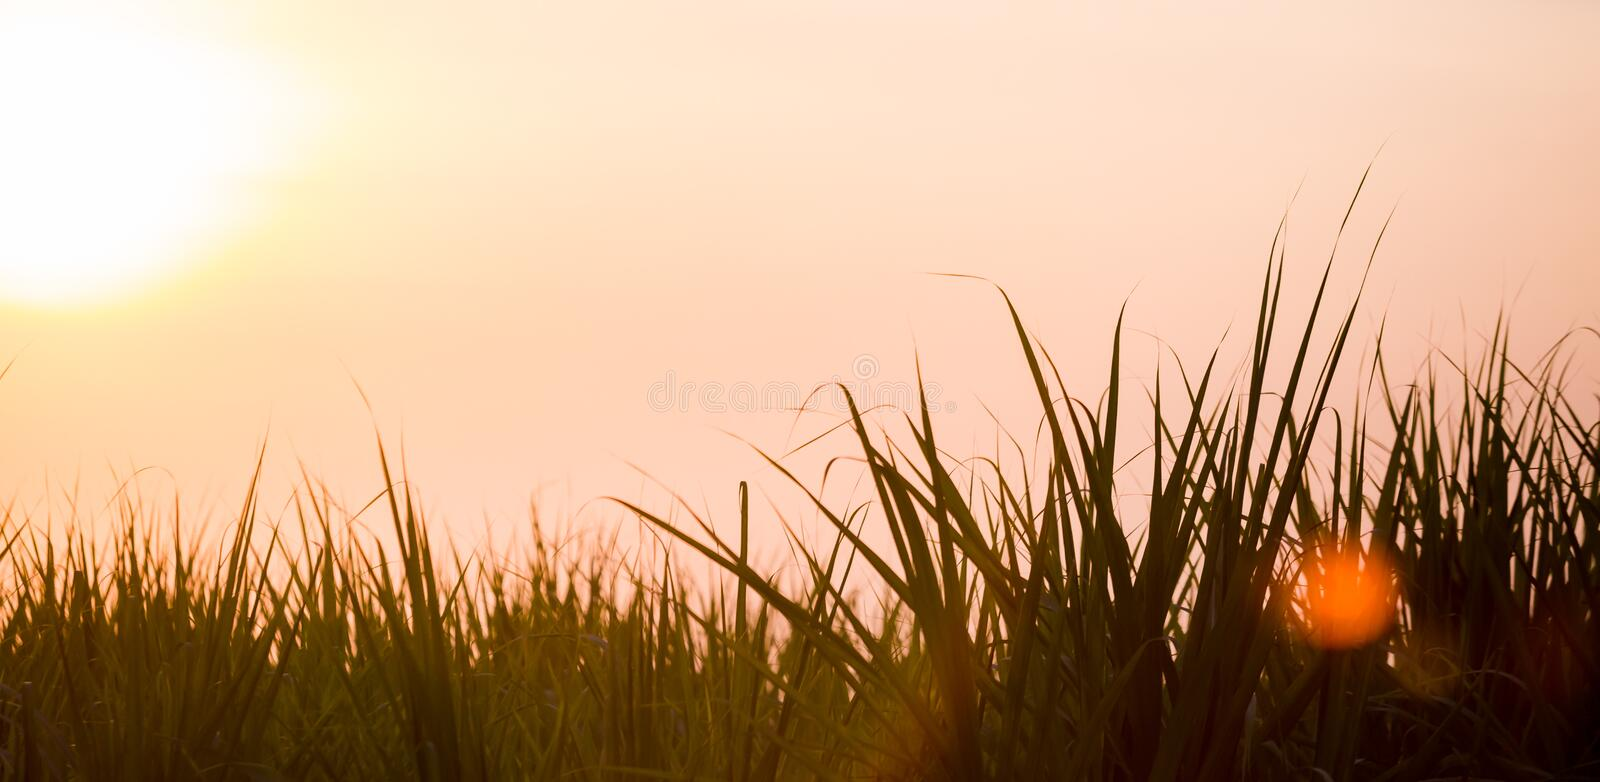 Sunset over sugar cane field royalty free stock photography